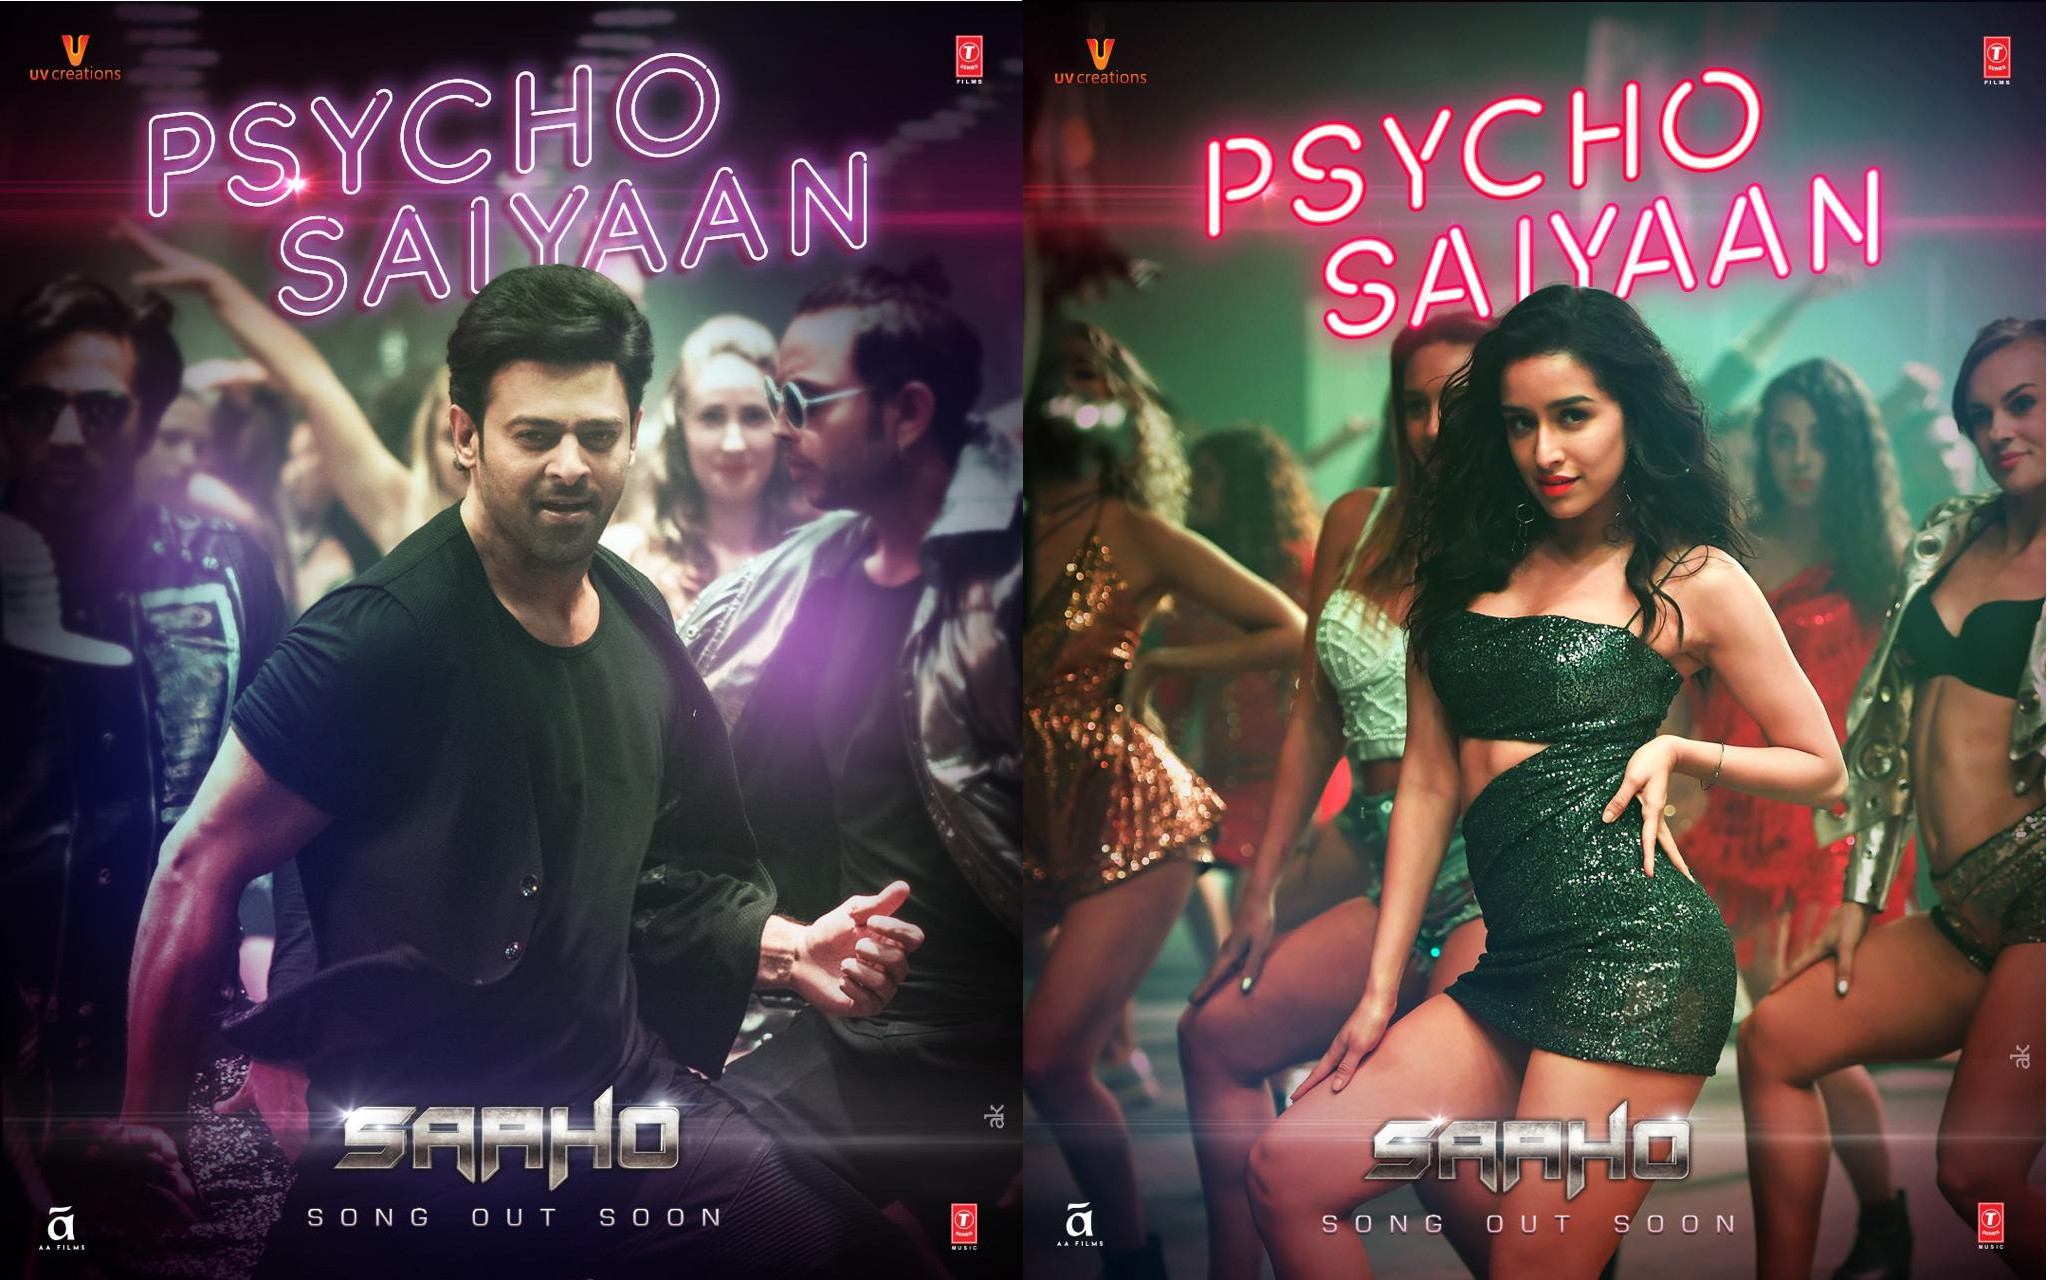 Saaho Movie First Single Psycho Saiyaan Posters